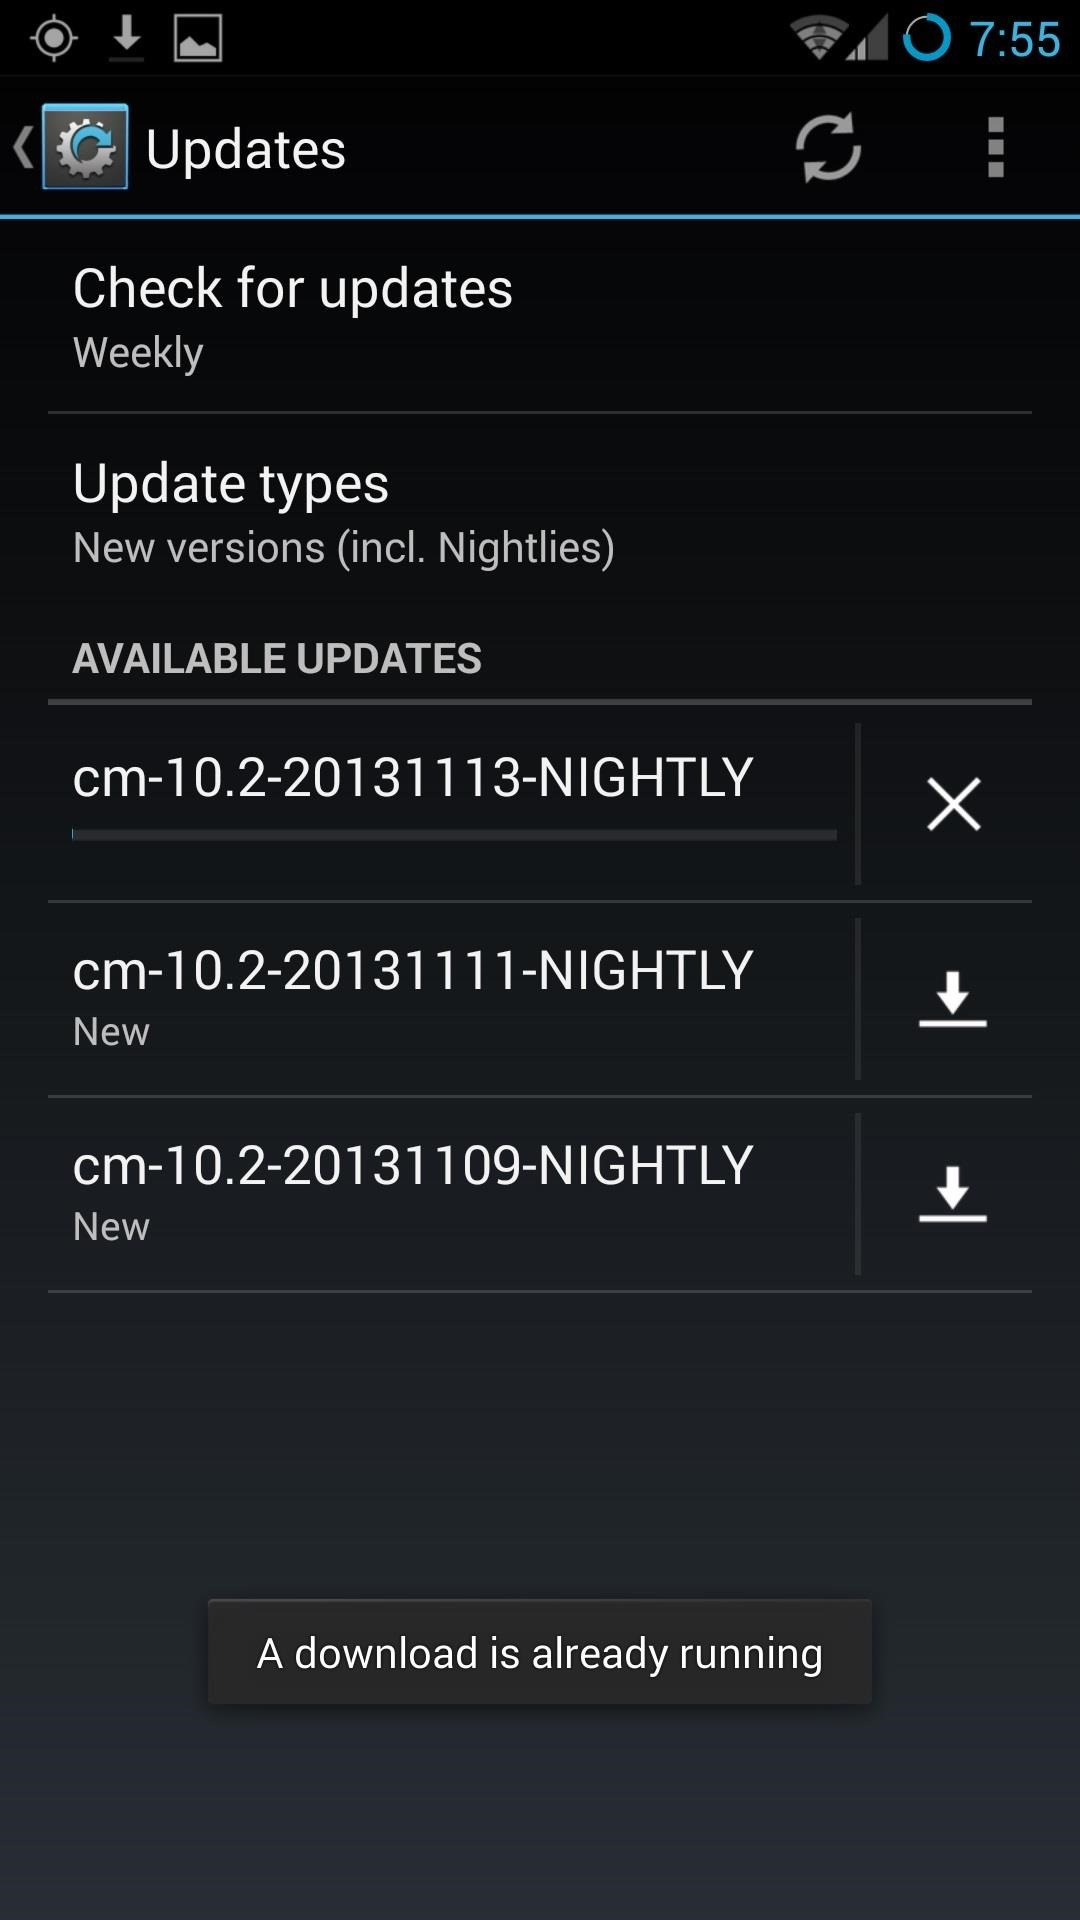 How to Install CyanogenMod on the HTC One Even Faster Now Without Rooting or Unlocking First